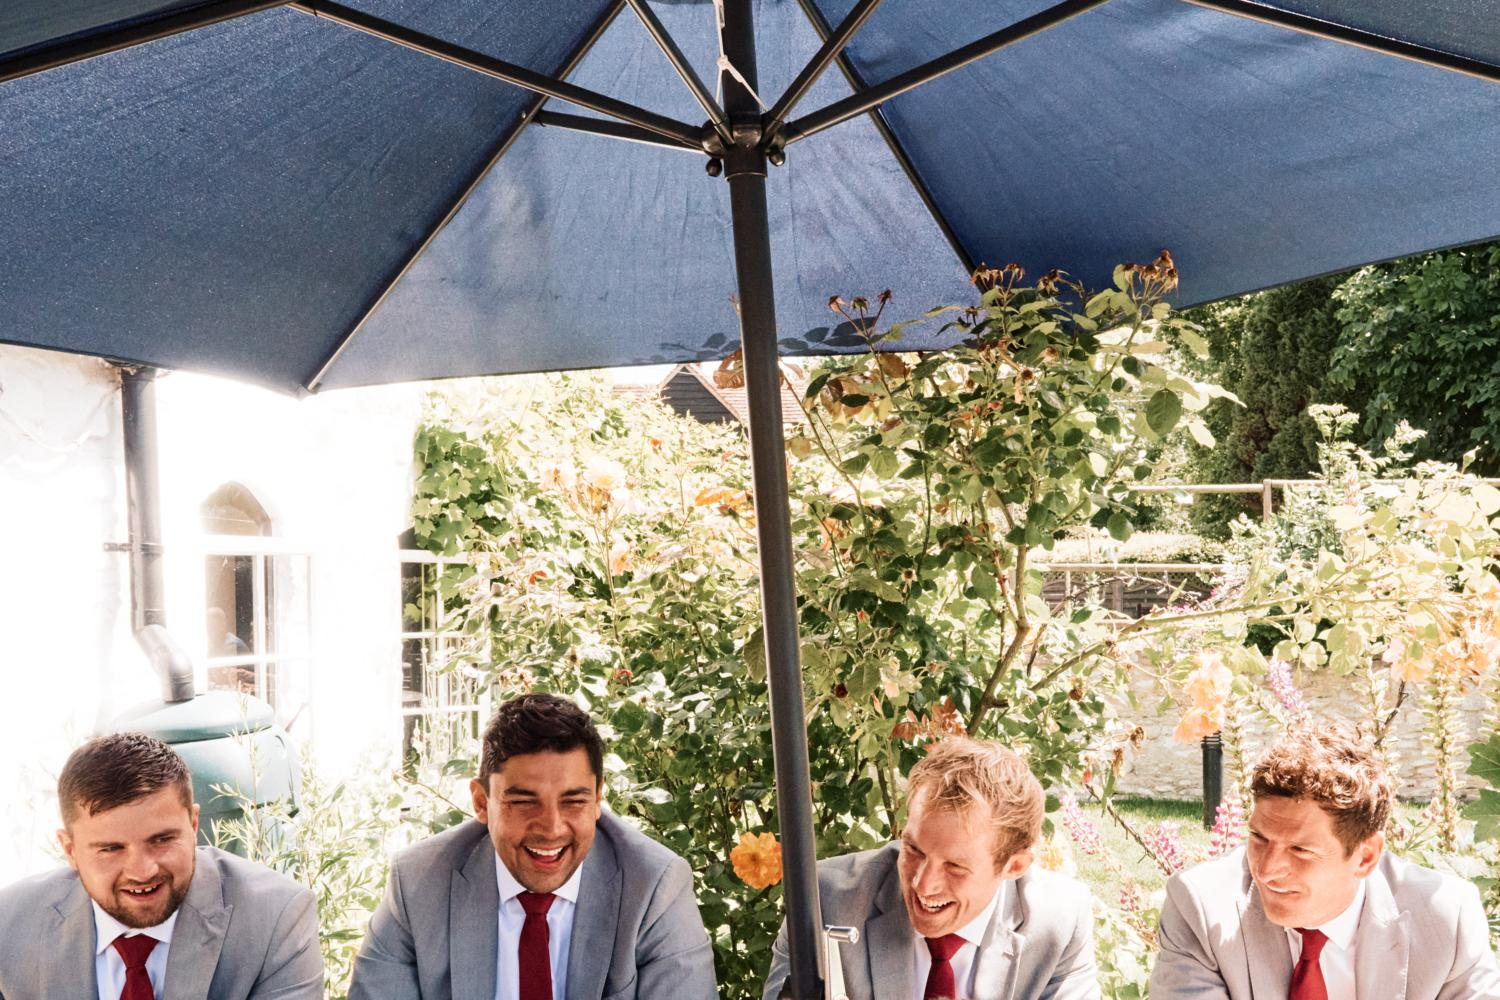 Groomsmen and three friends sit at a picnic bench